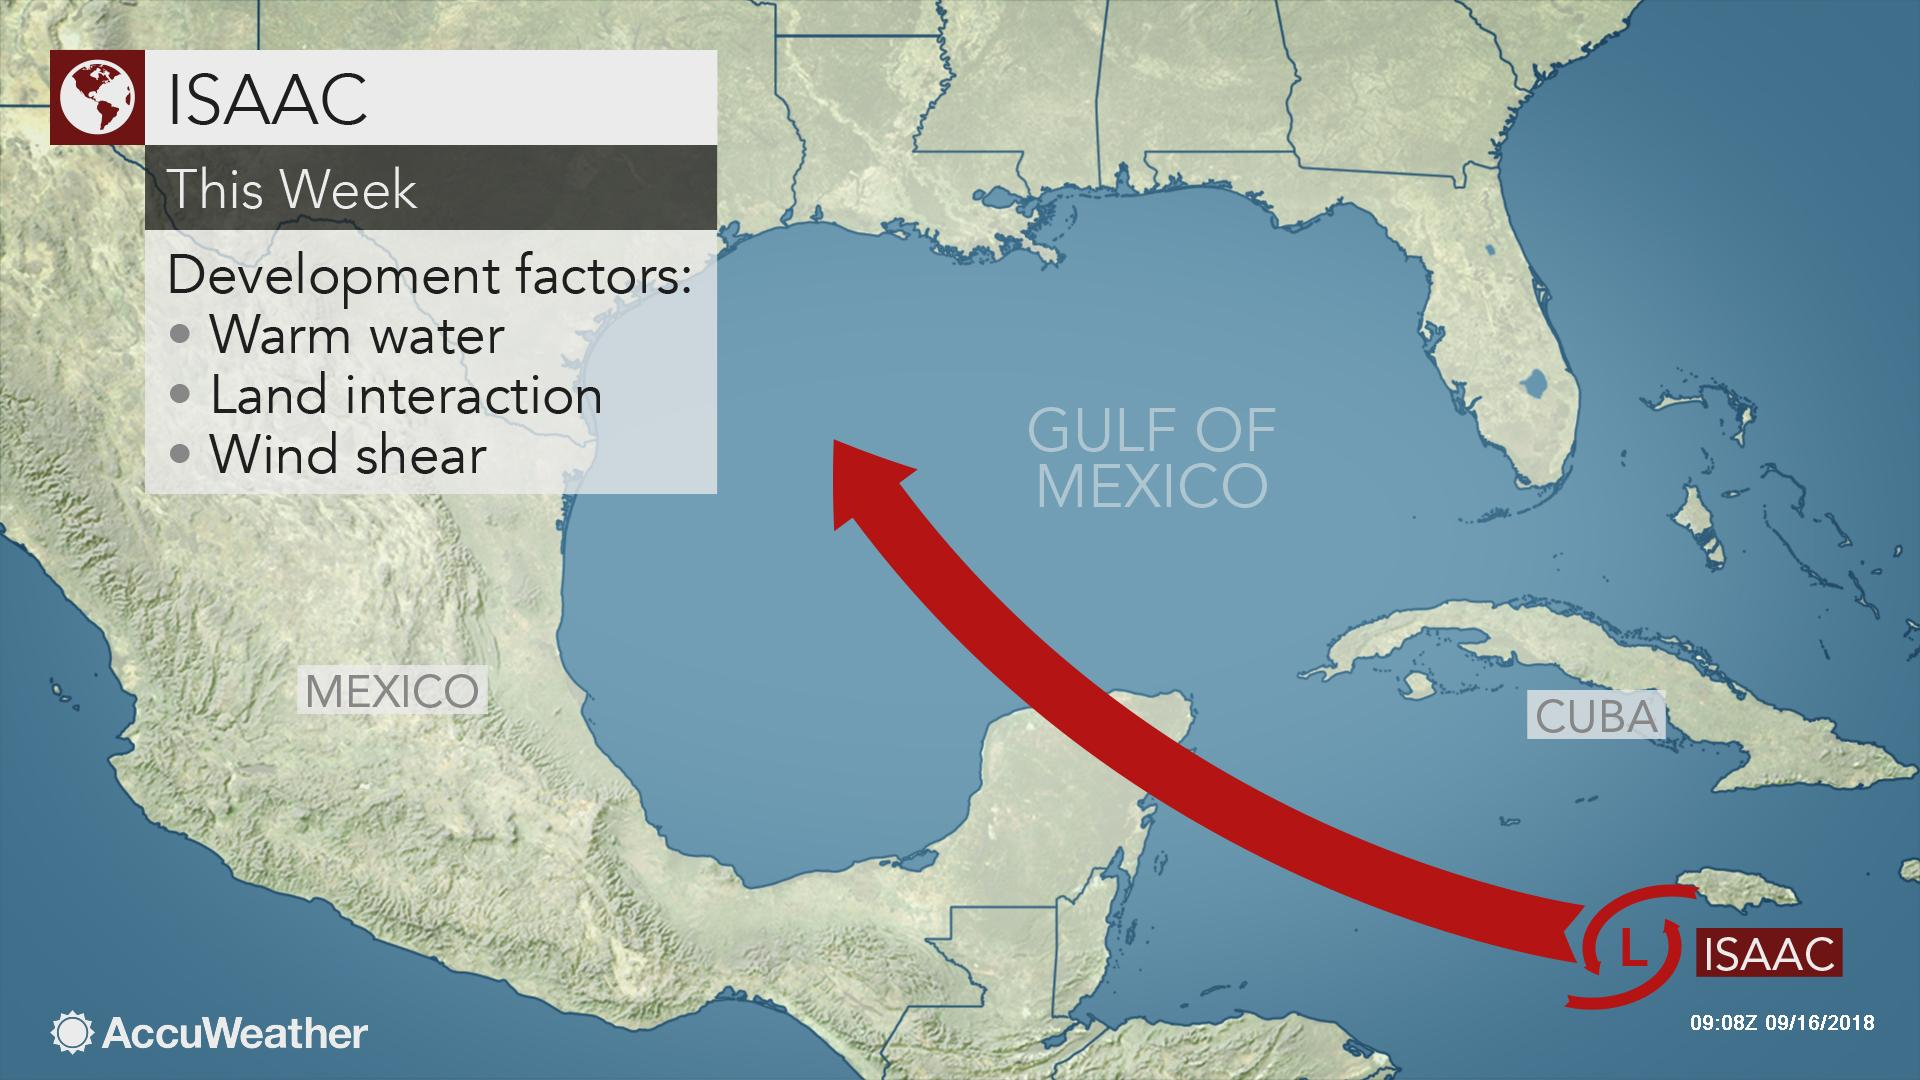 Isaac may restrengthen in western Caribbean, Gulf of Mexico ... on south america map, appalachian mountains, ohio river, gulf mexico marine maps, bahamas map, texas map, canada map, italy map, caribbean map, colorado river, central america map, honduras map, caribbean sea, great lakes map, mississippi map, atlantic ocean, persian gulf, cuba map, latin america map, galveston map, rio grande map, gulf of alaska, world map, pacific ocean, rio grande, chesapeake bay, gulf coast of the united states, arctic ocean, lake michigan, small gulf mexico map, mississippi river, deepwater horizon oil spill, atlantic map, missouri river, hudson bay, north america map, florida map,